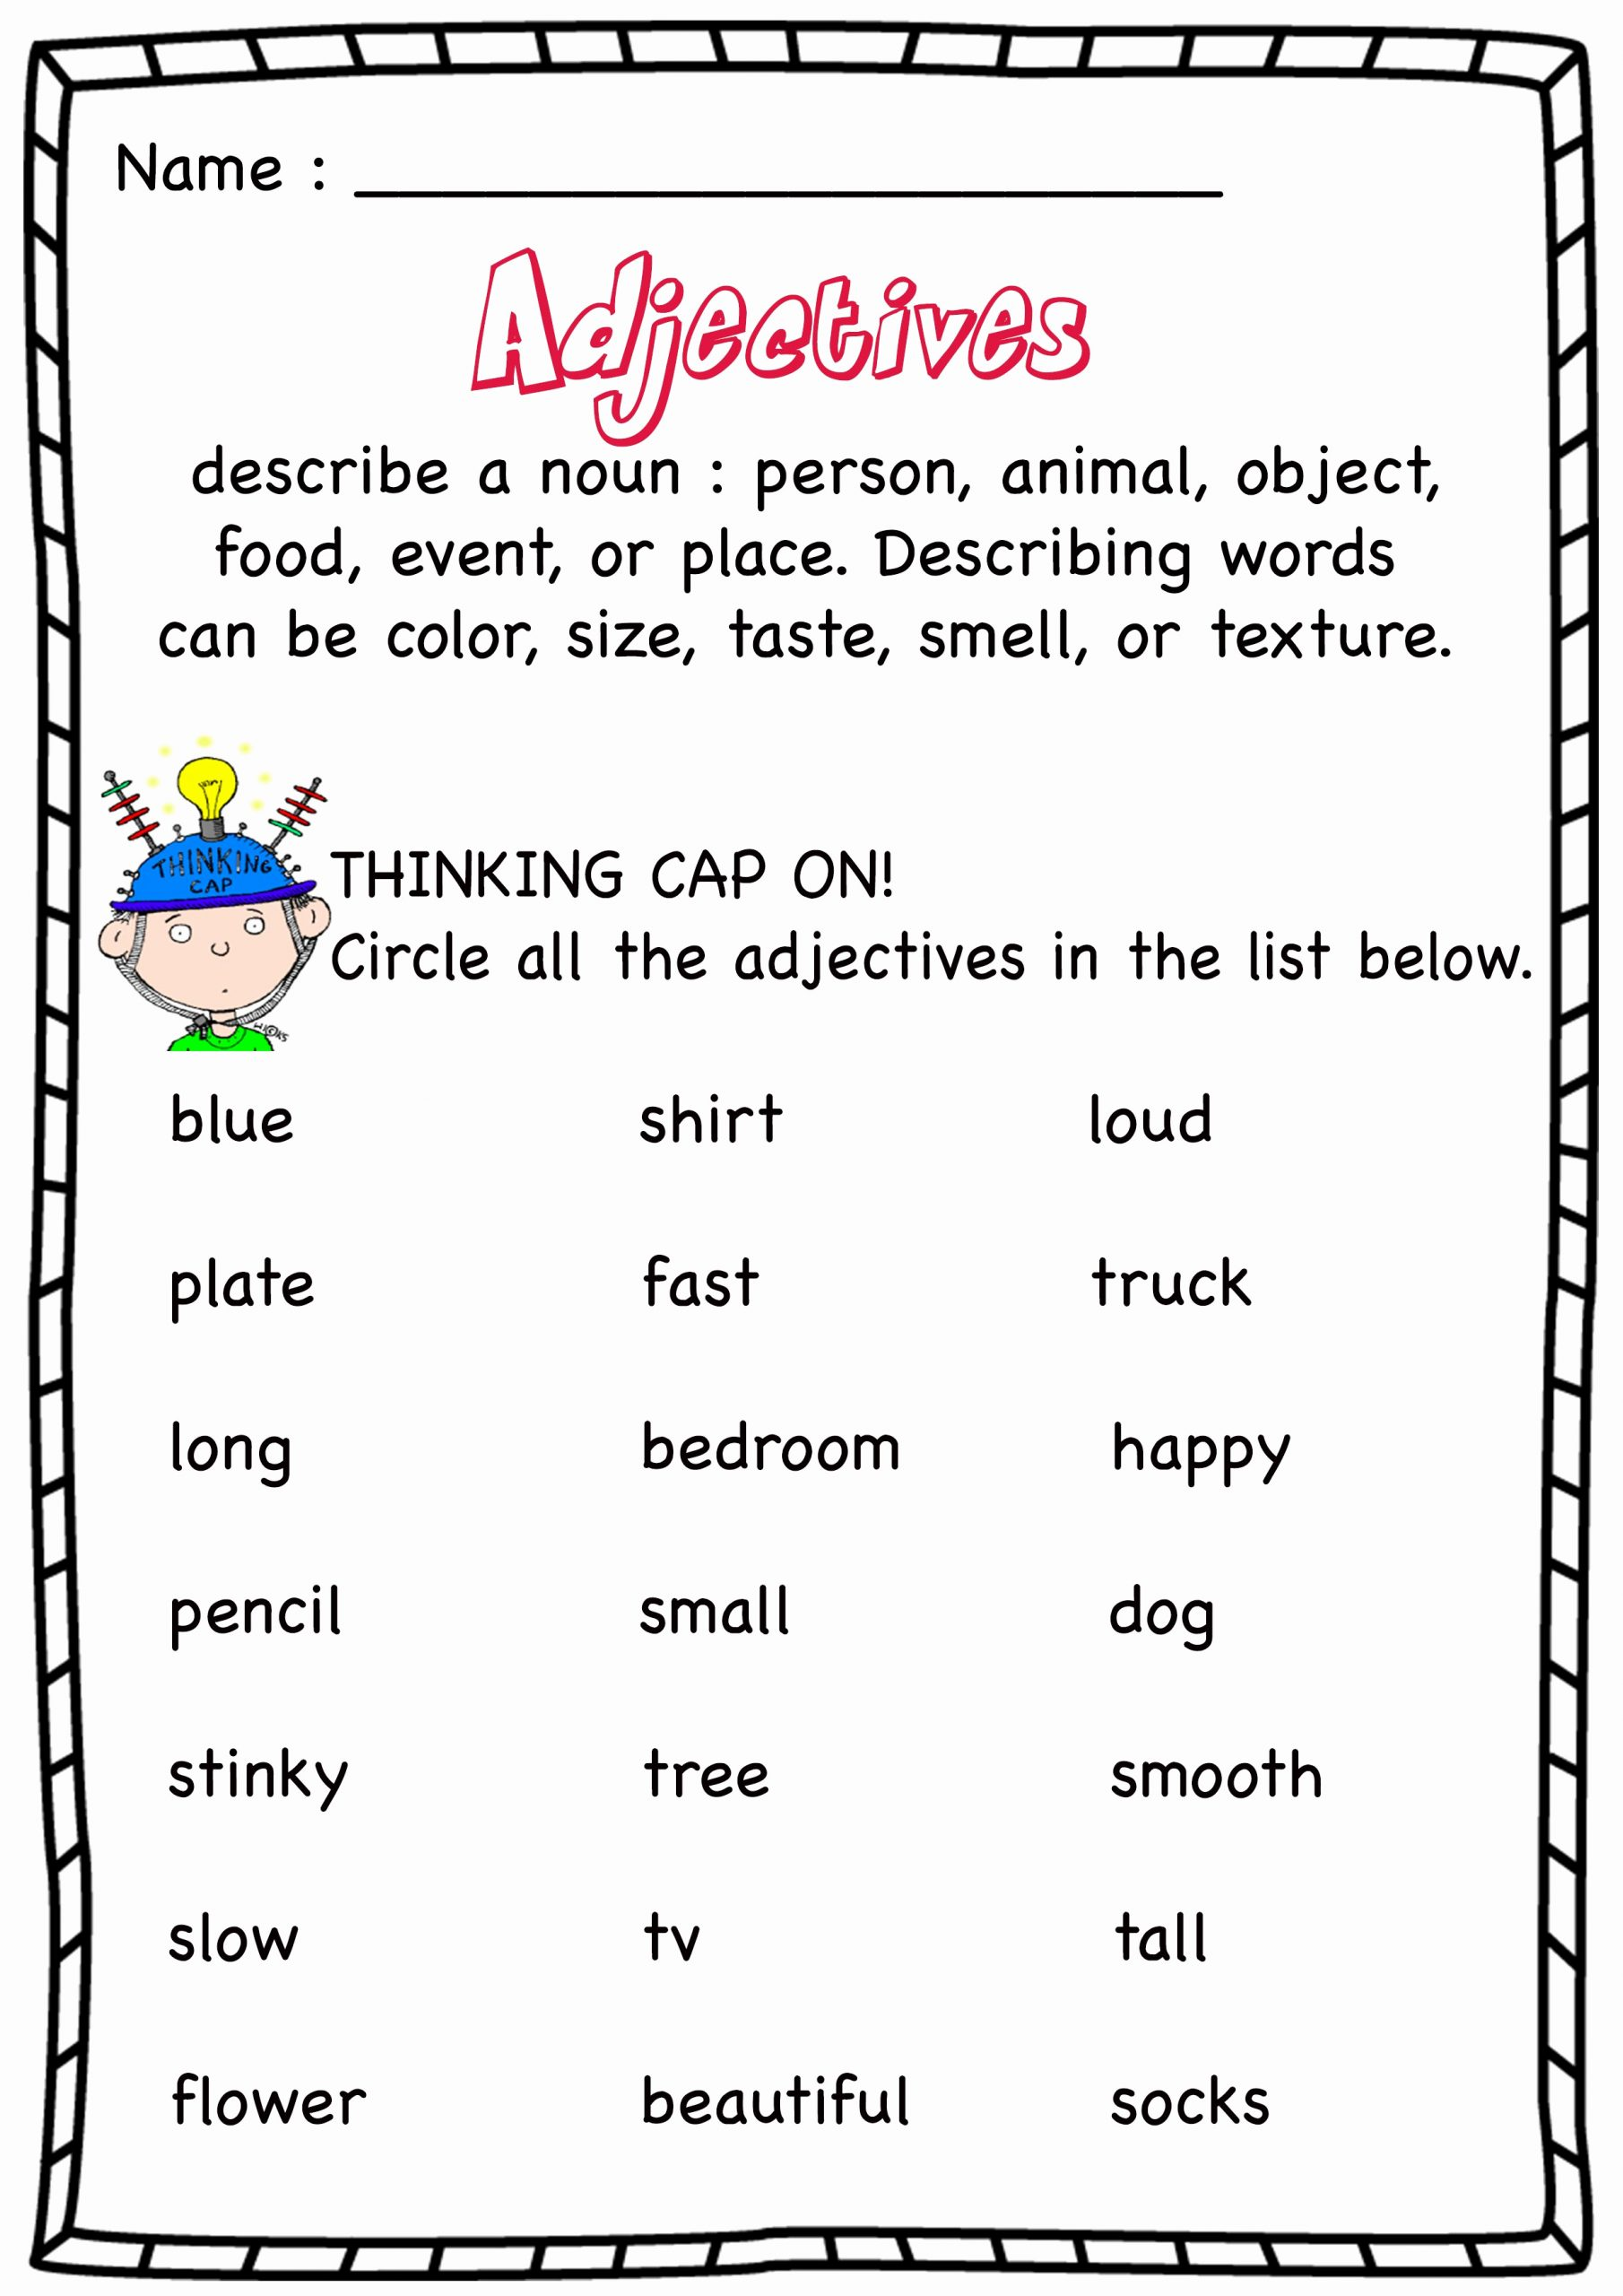 Free Printable Adjective Worksheets Lovely Worksheet Find the Adjectives